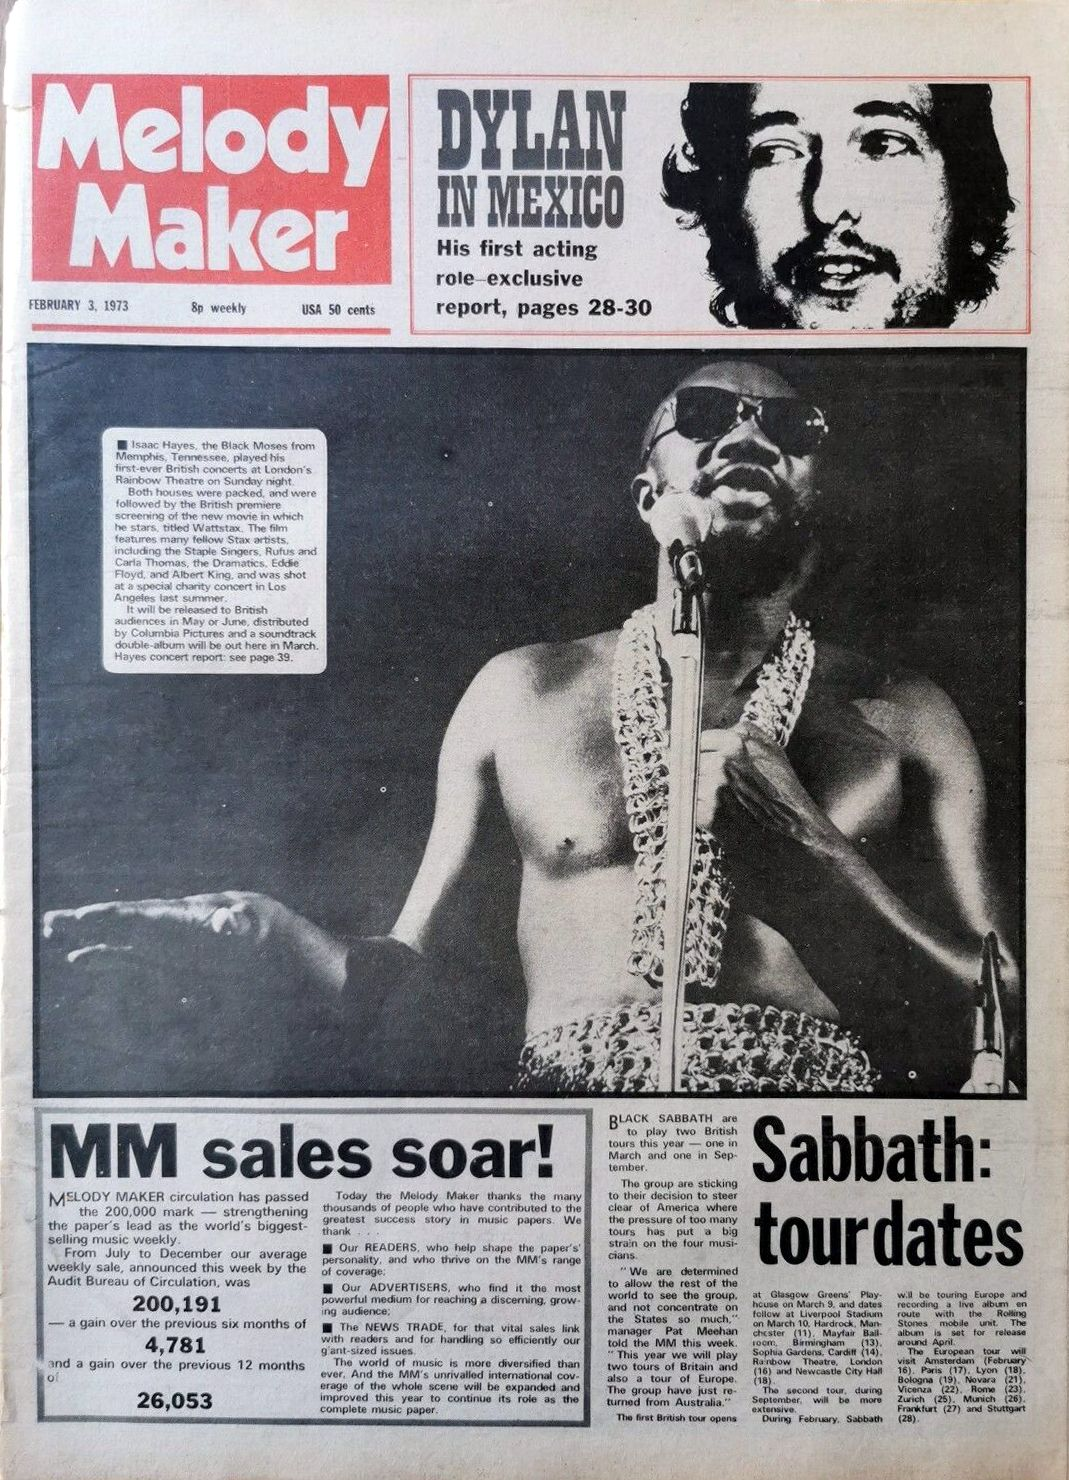 Melody Maker 3 February 1973 Bob Dylan cover story